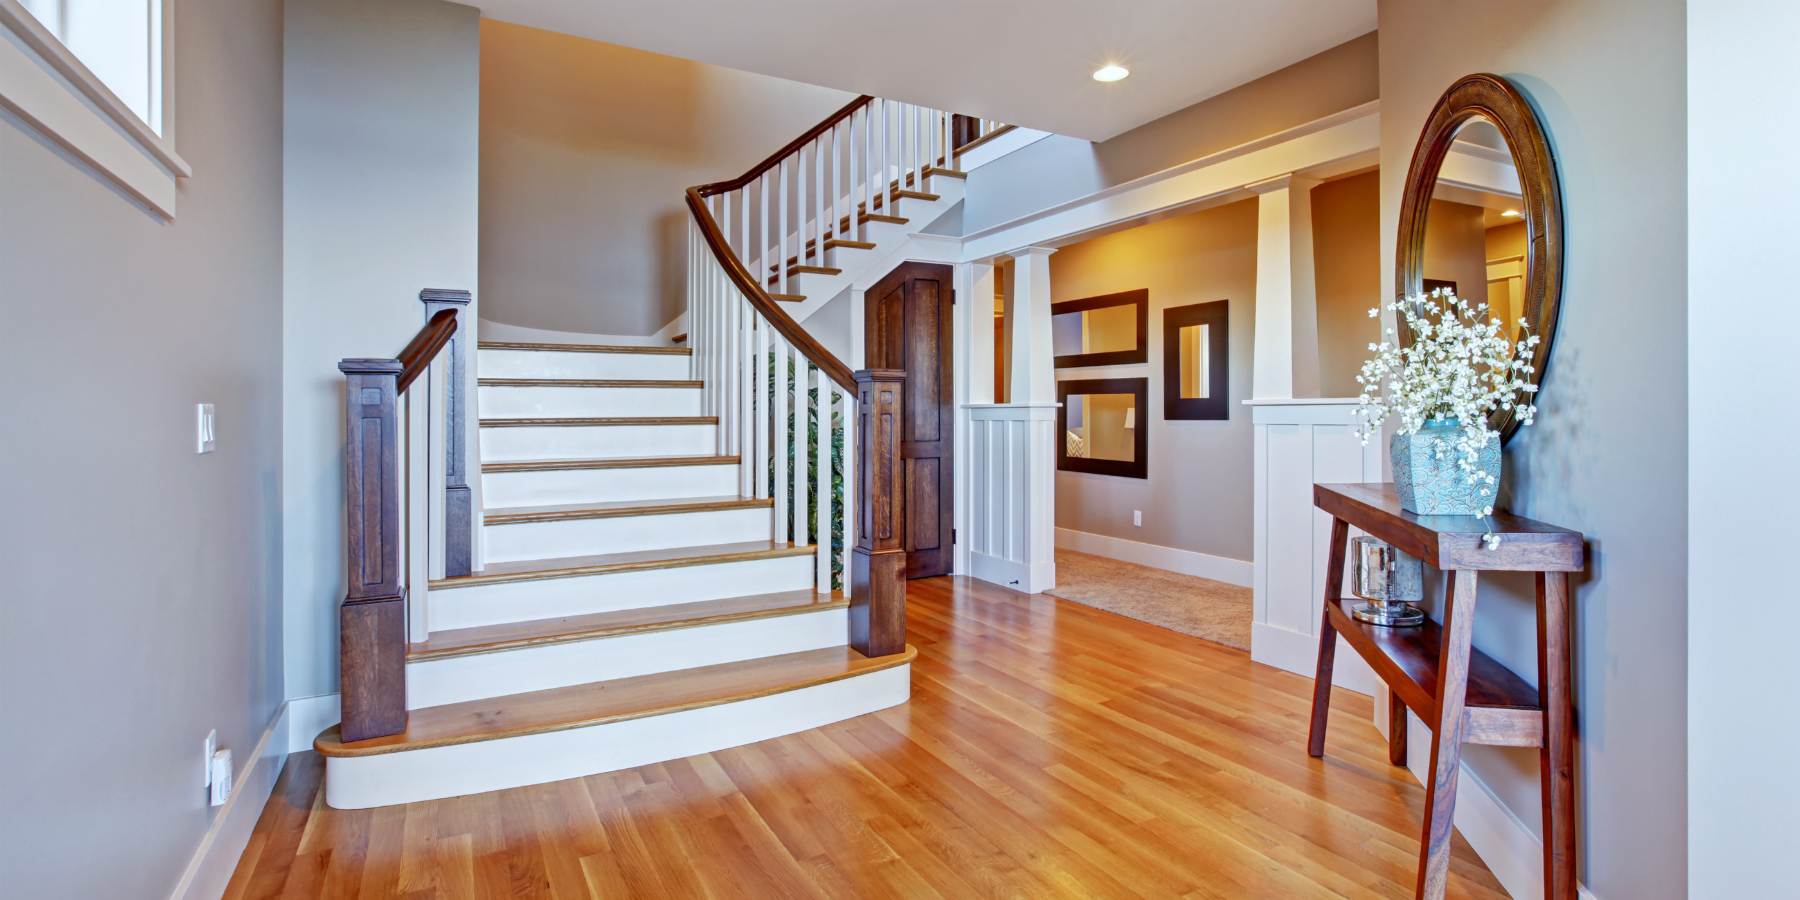 Entrance foyer with staircase and wood floor